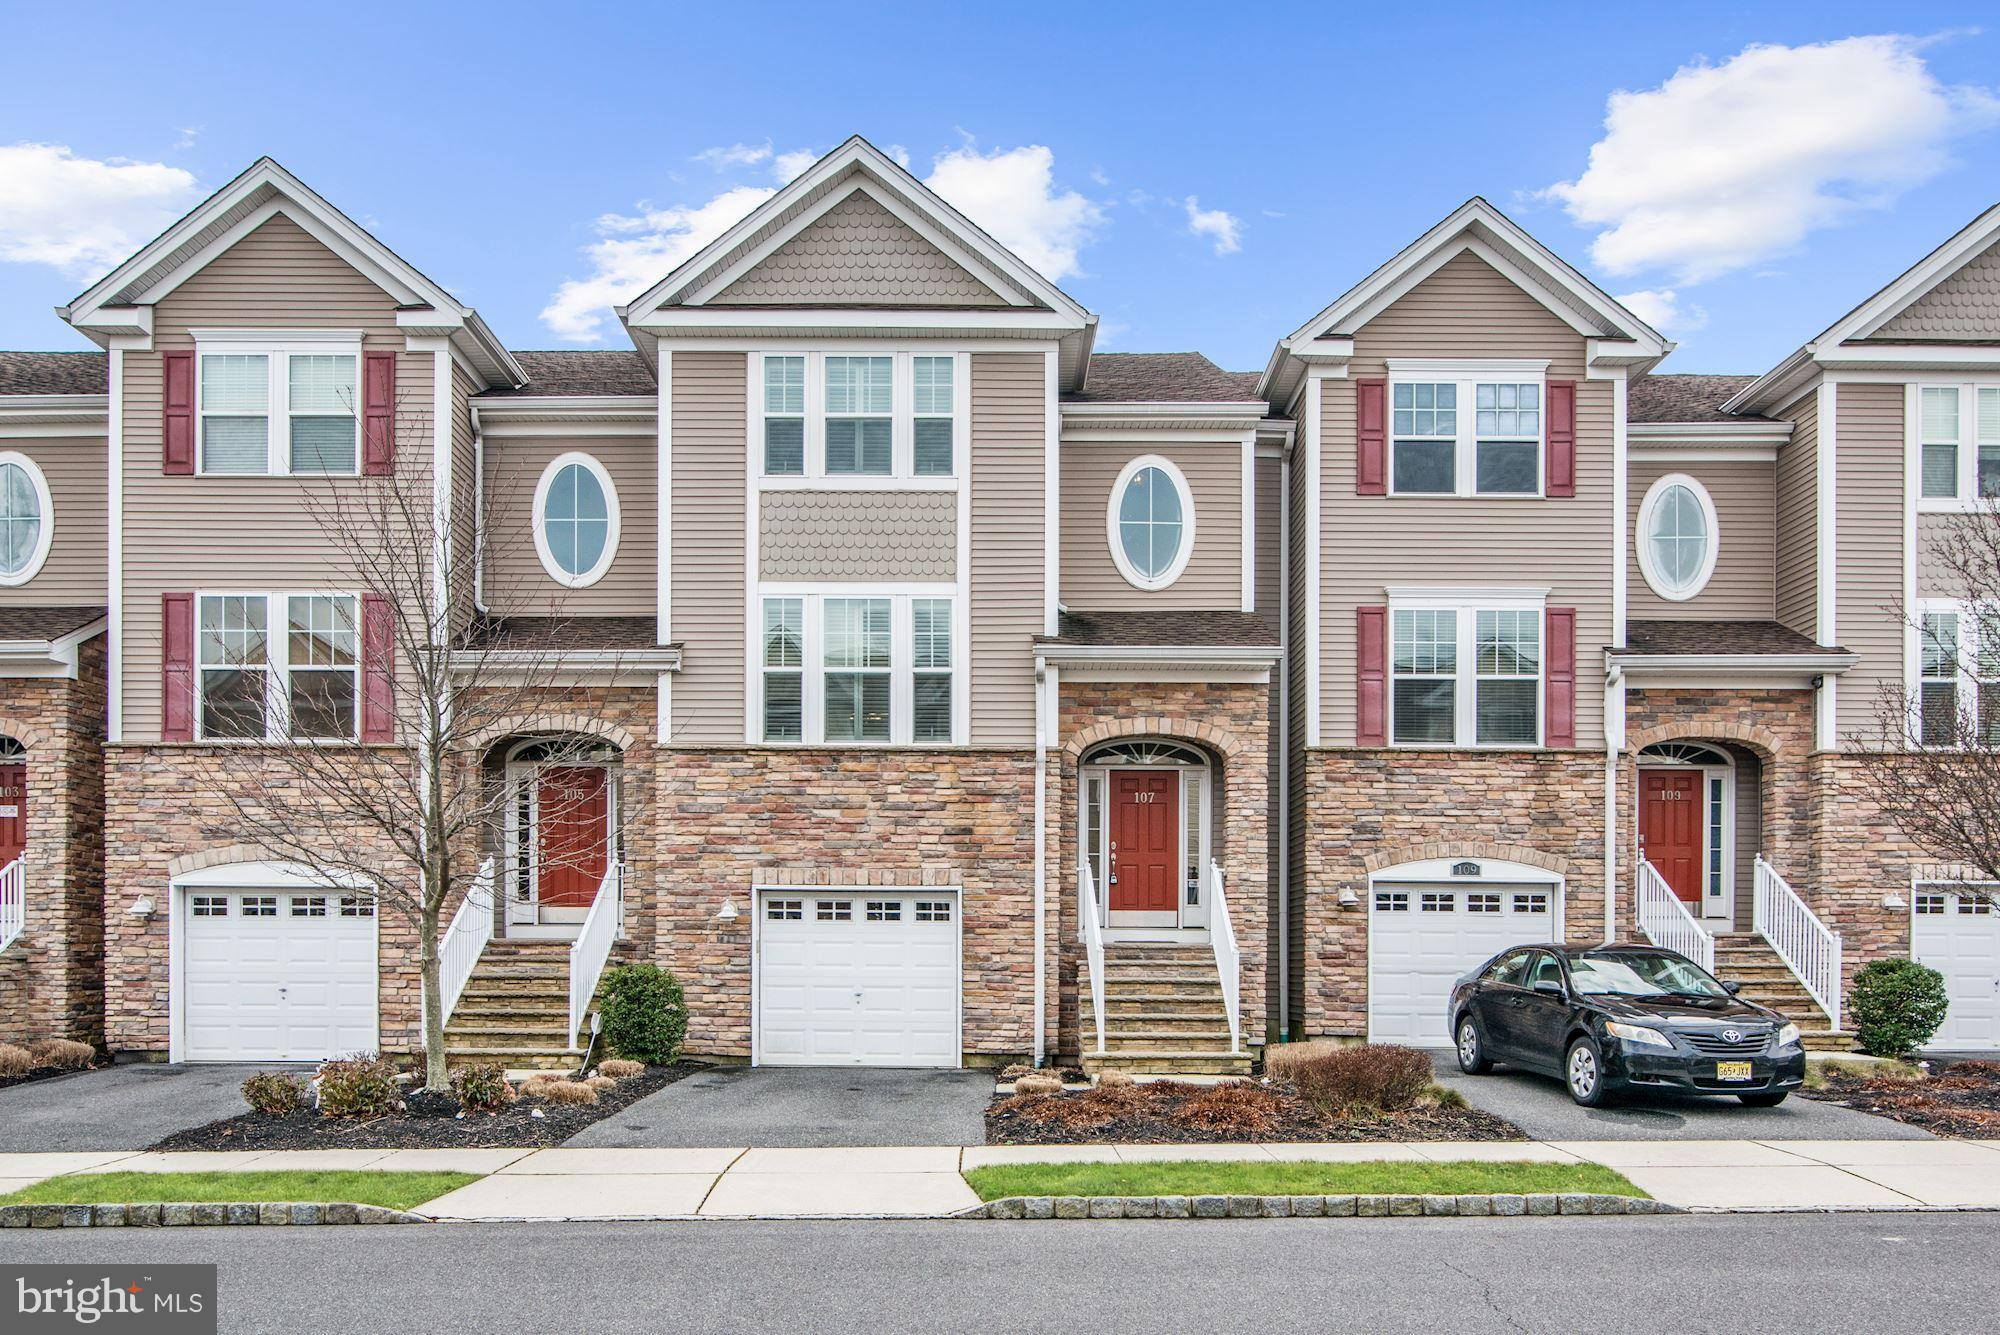 107 DUNLIN LANE, EGG HARBOR TOWNSHIP, NJ 08234